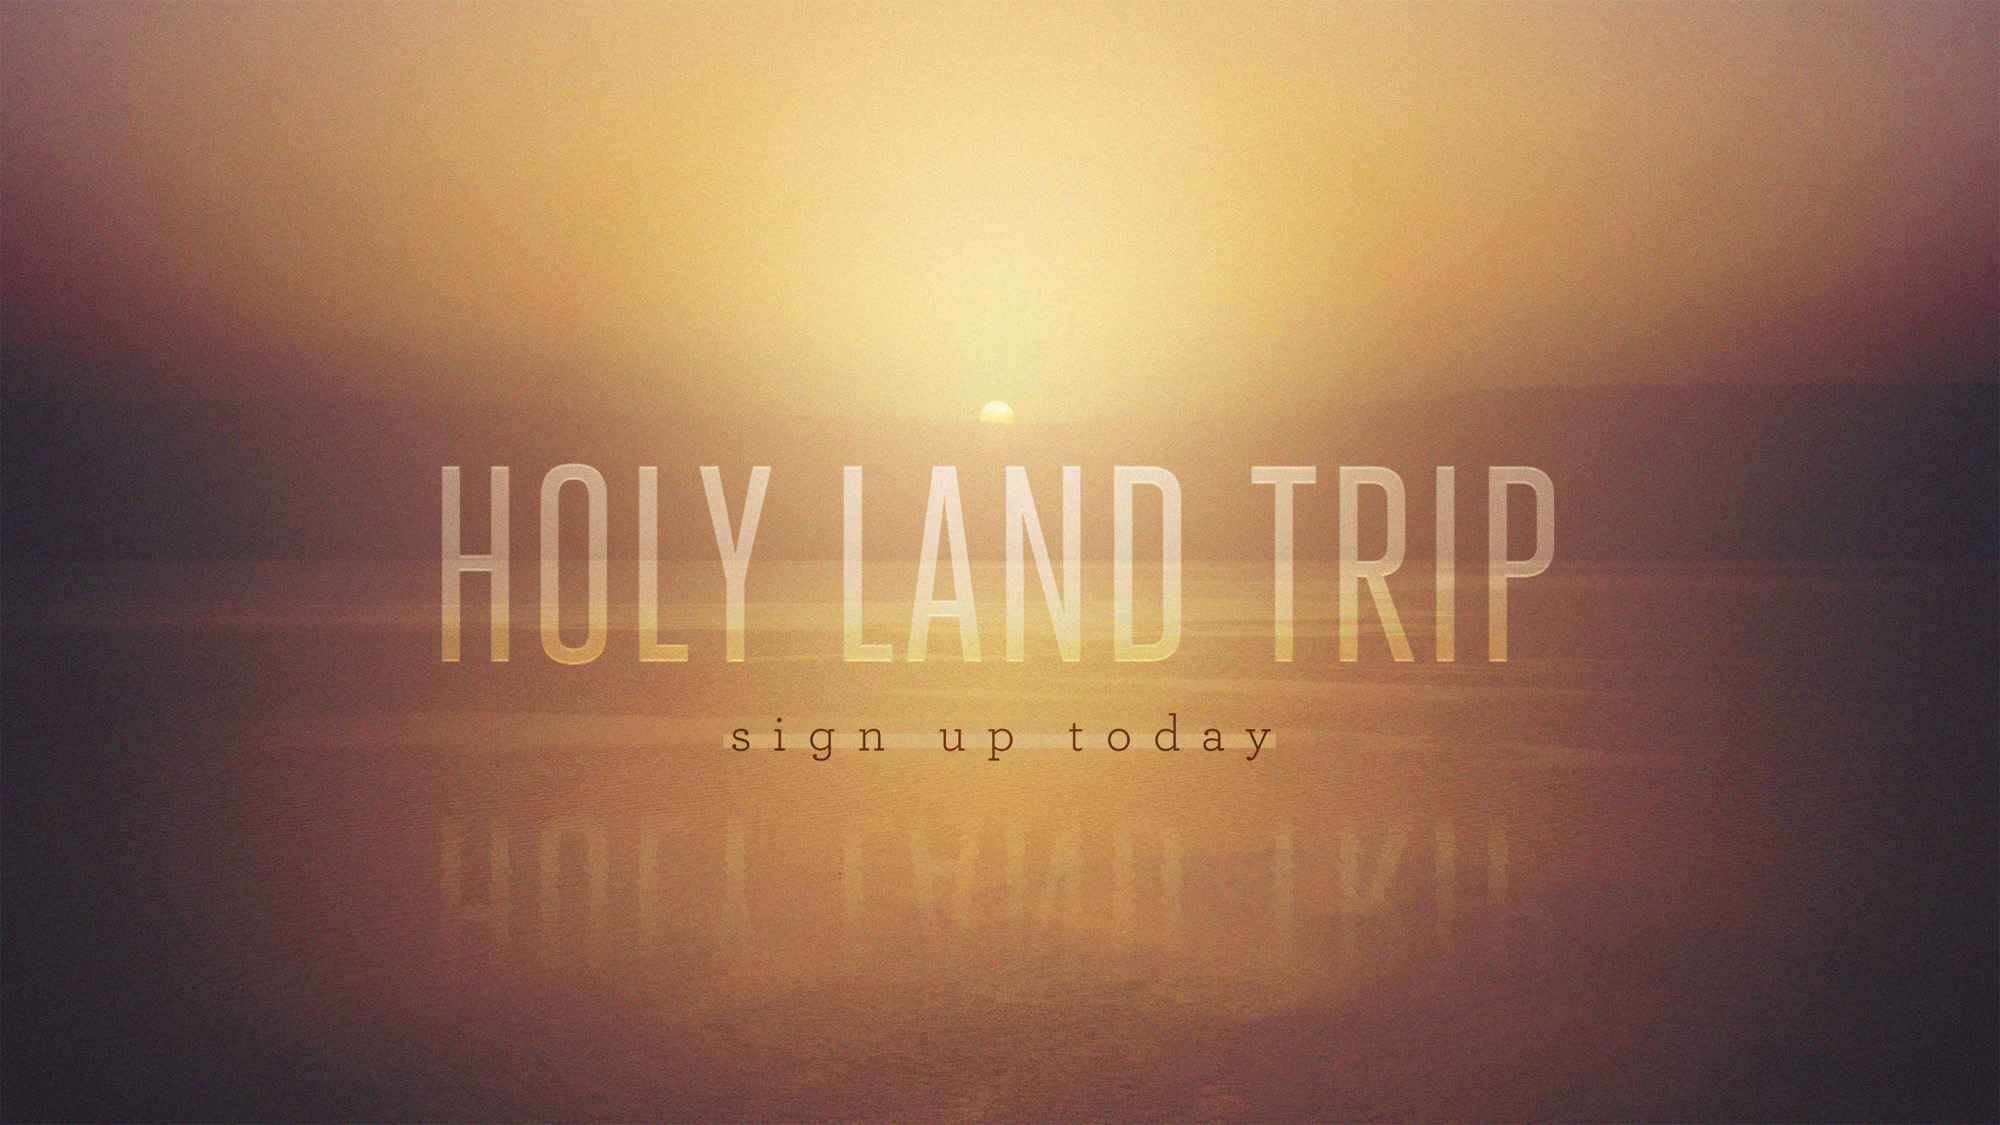 holy_land_trip-title-1-Wide 16x9